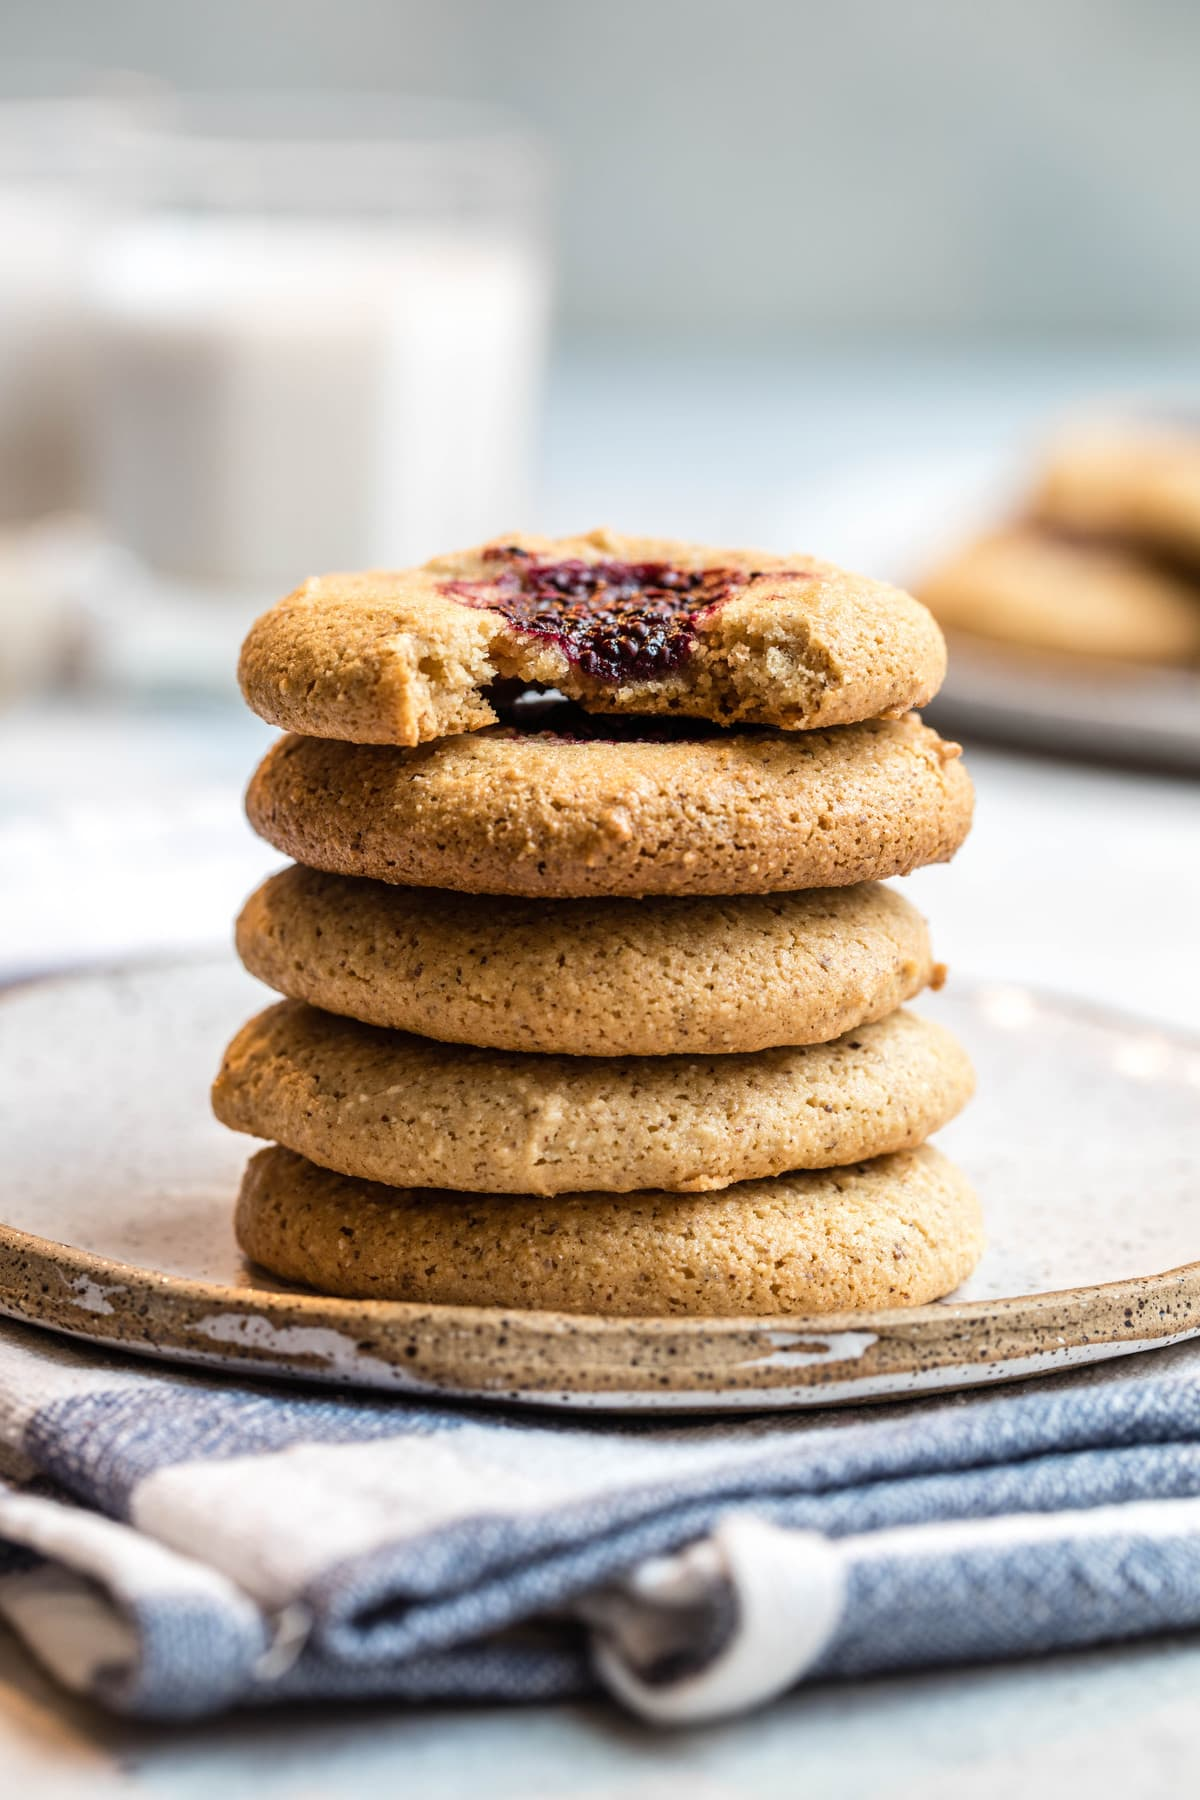 stack of almond flour cookies on white speckled plate with bite taken out of top cookie